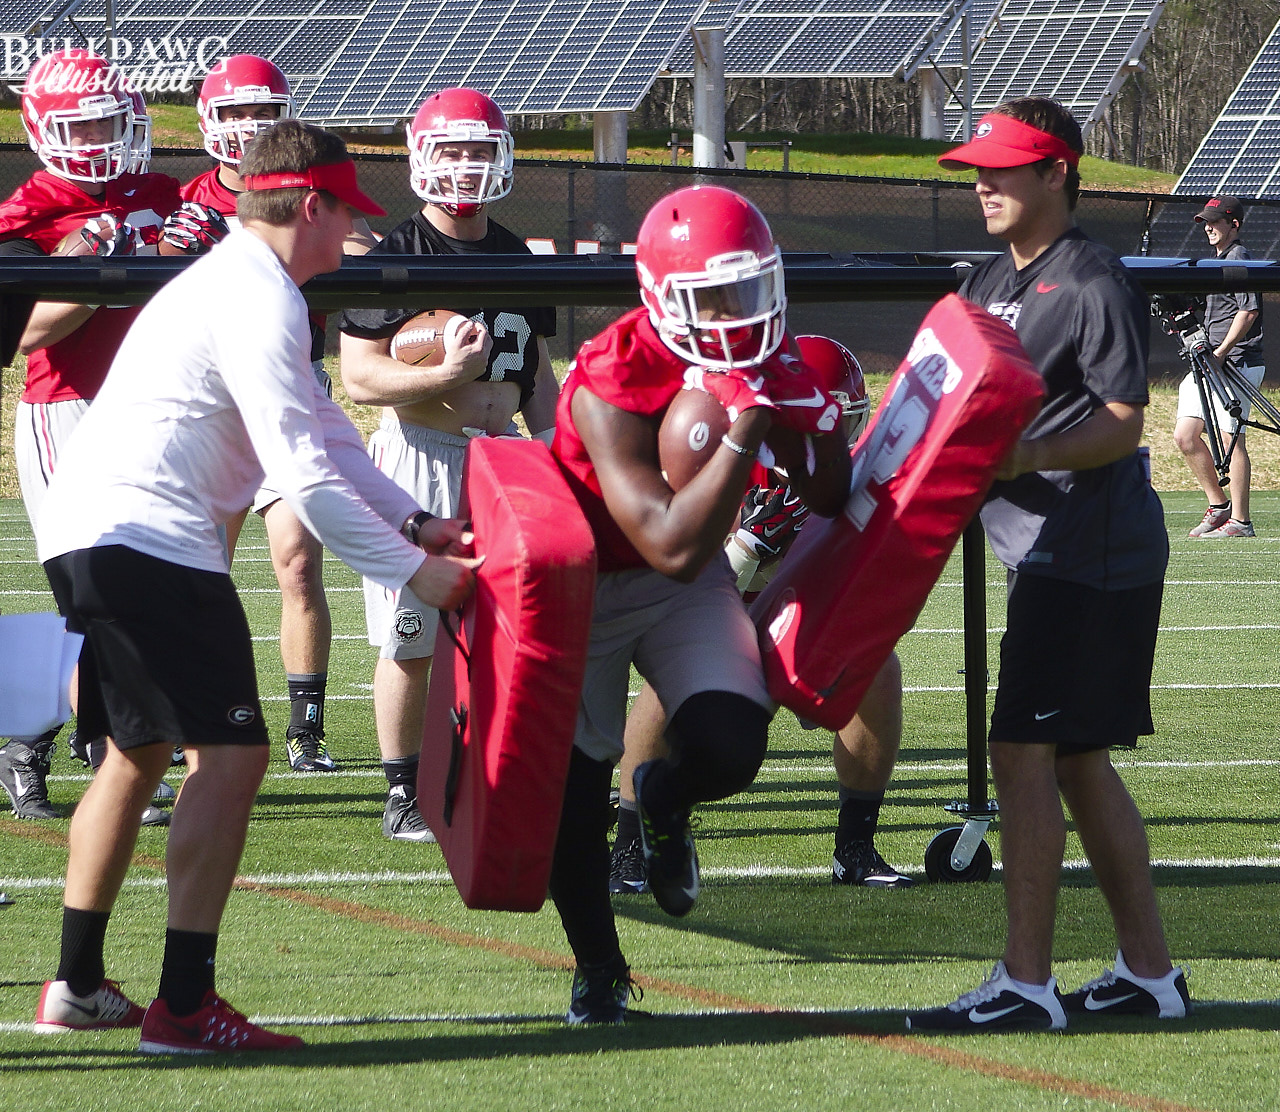 Tae Crowder during ball security drill